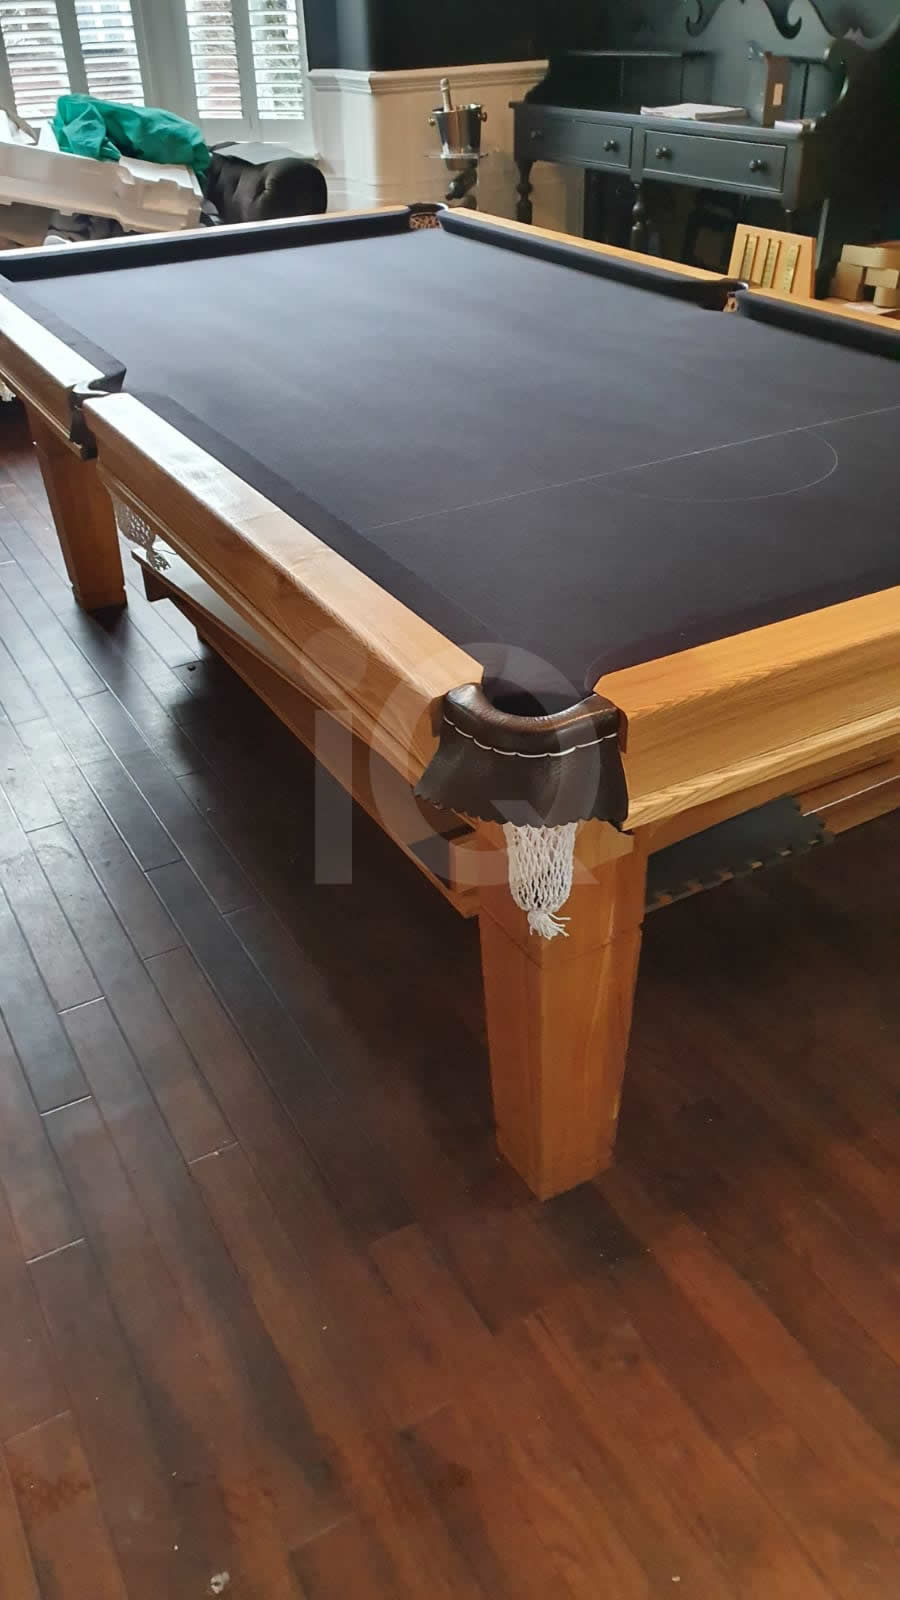 Recover of a 8ft Strachan 6811 Snooker Table with Black Cloth After Image 7